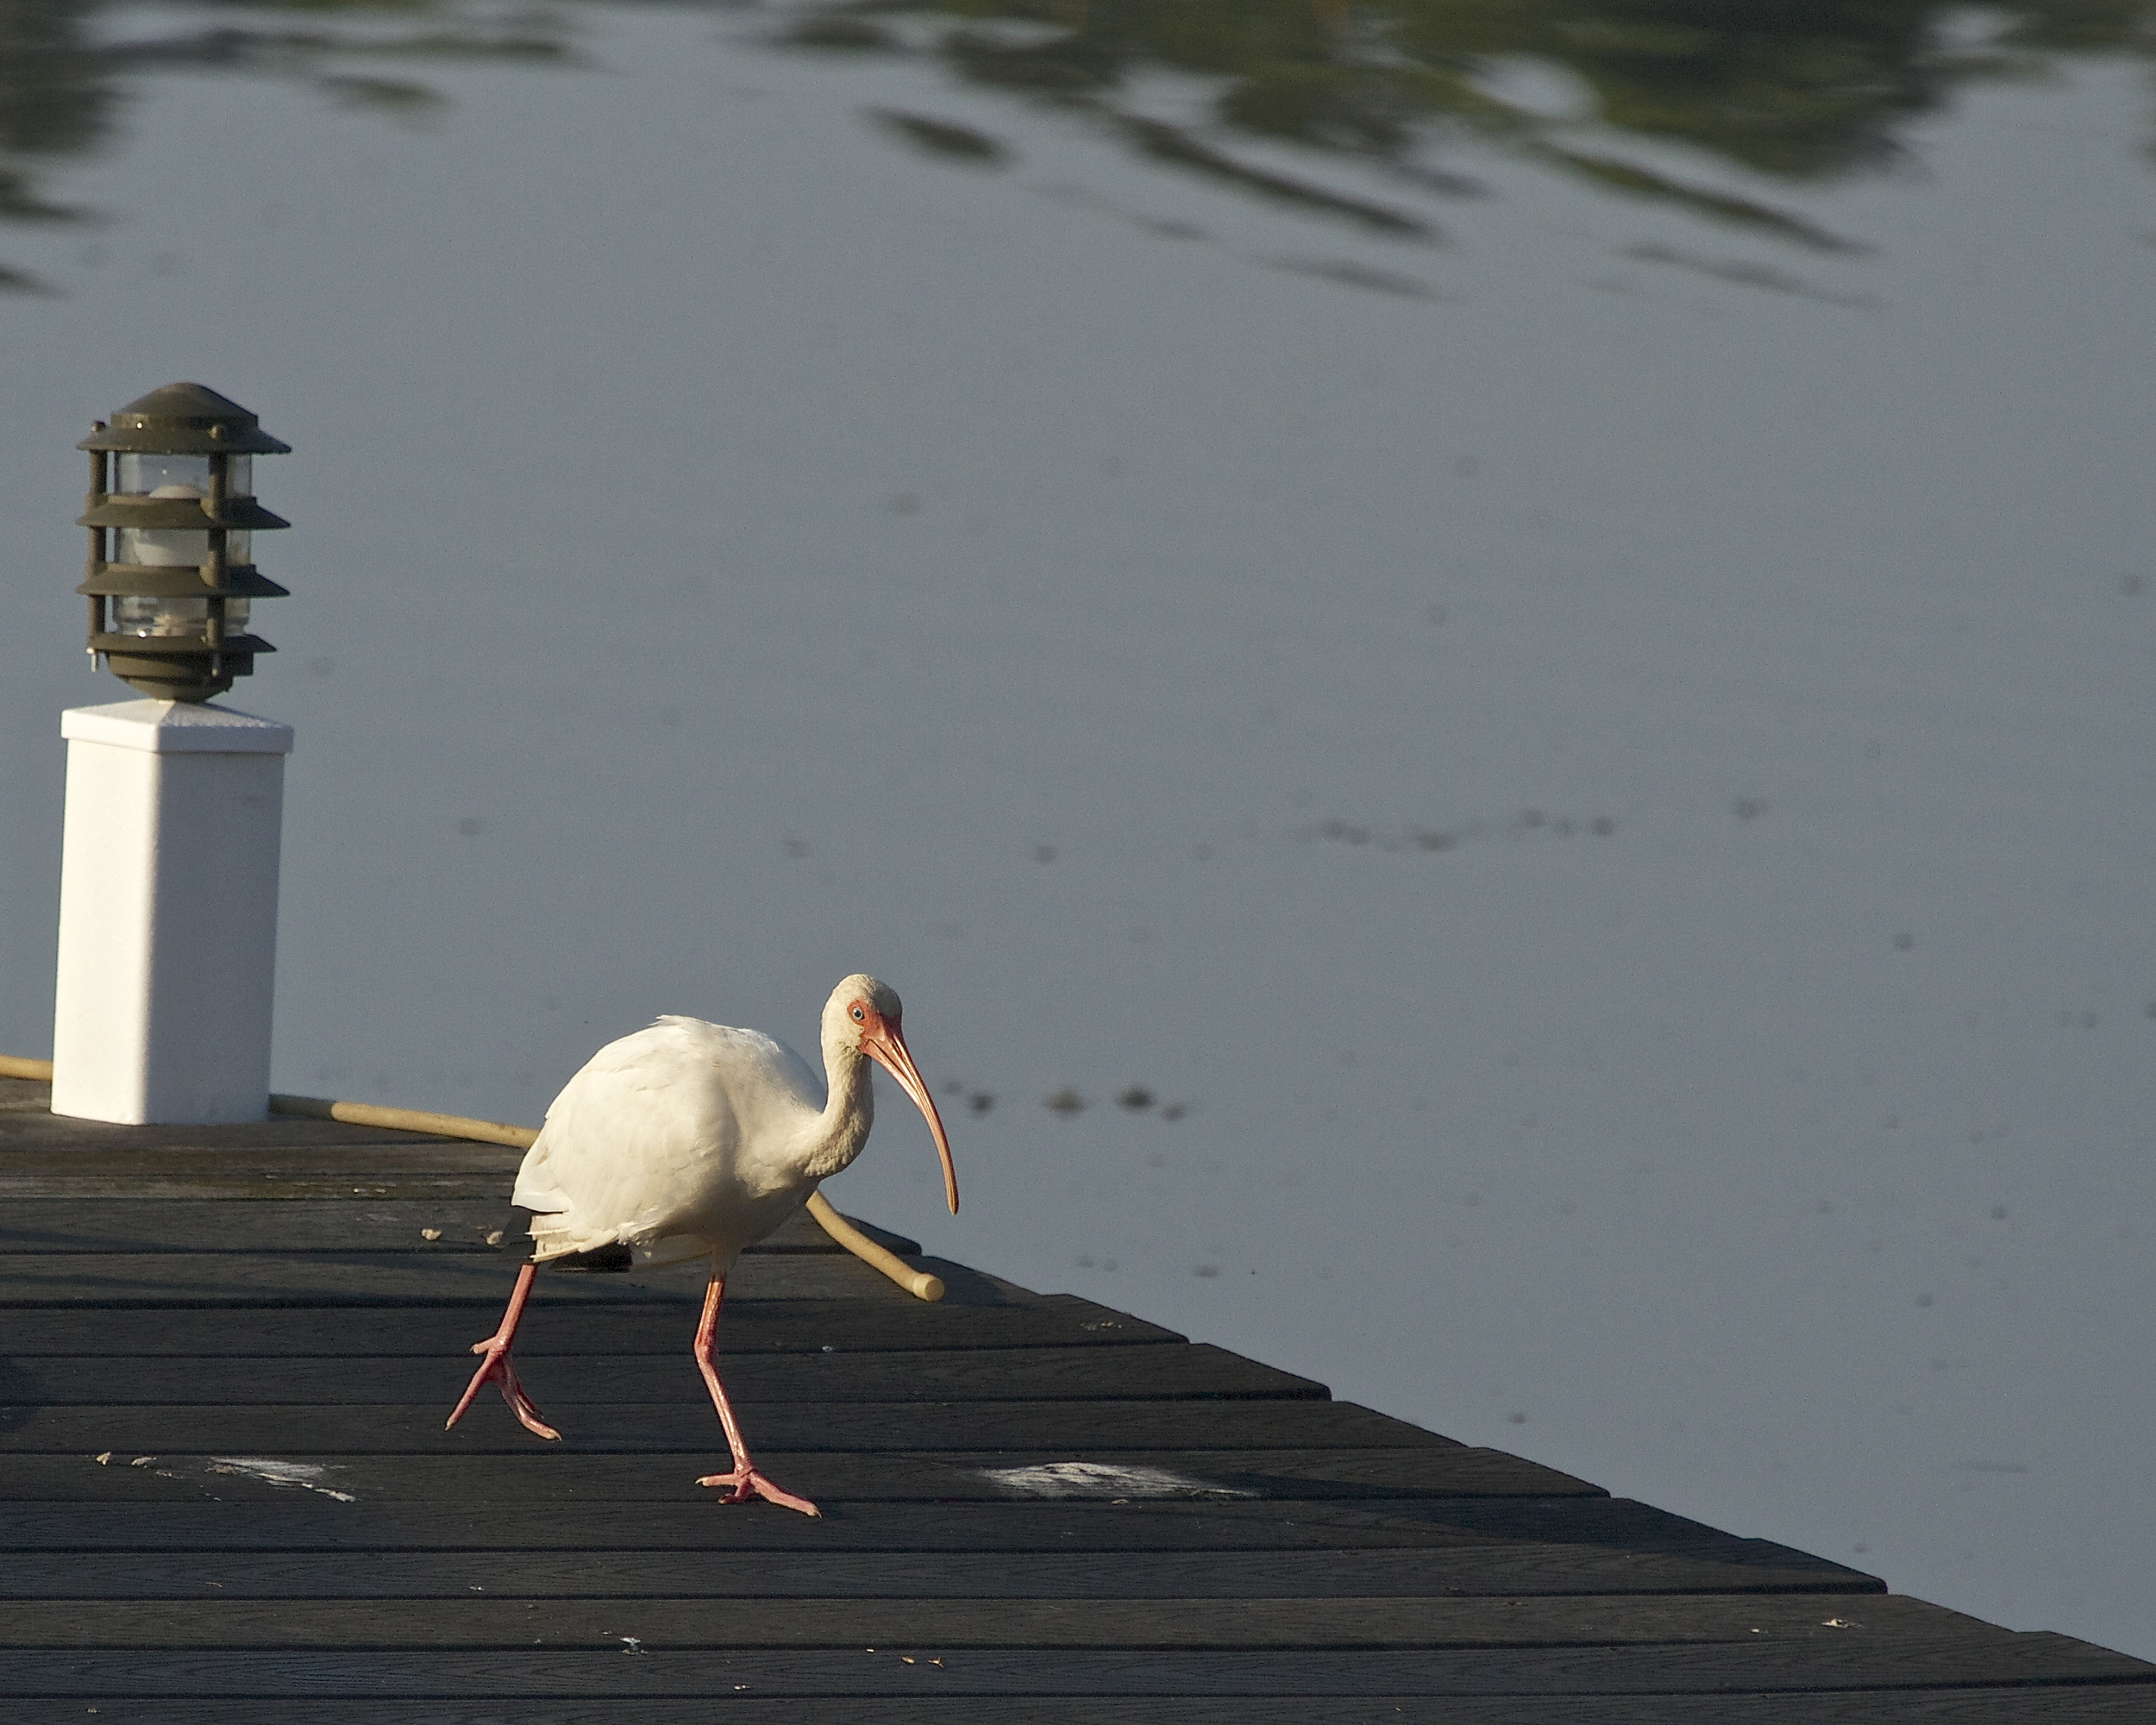 As I lock back I see a White Ibis walk up the pier.